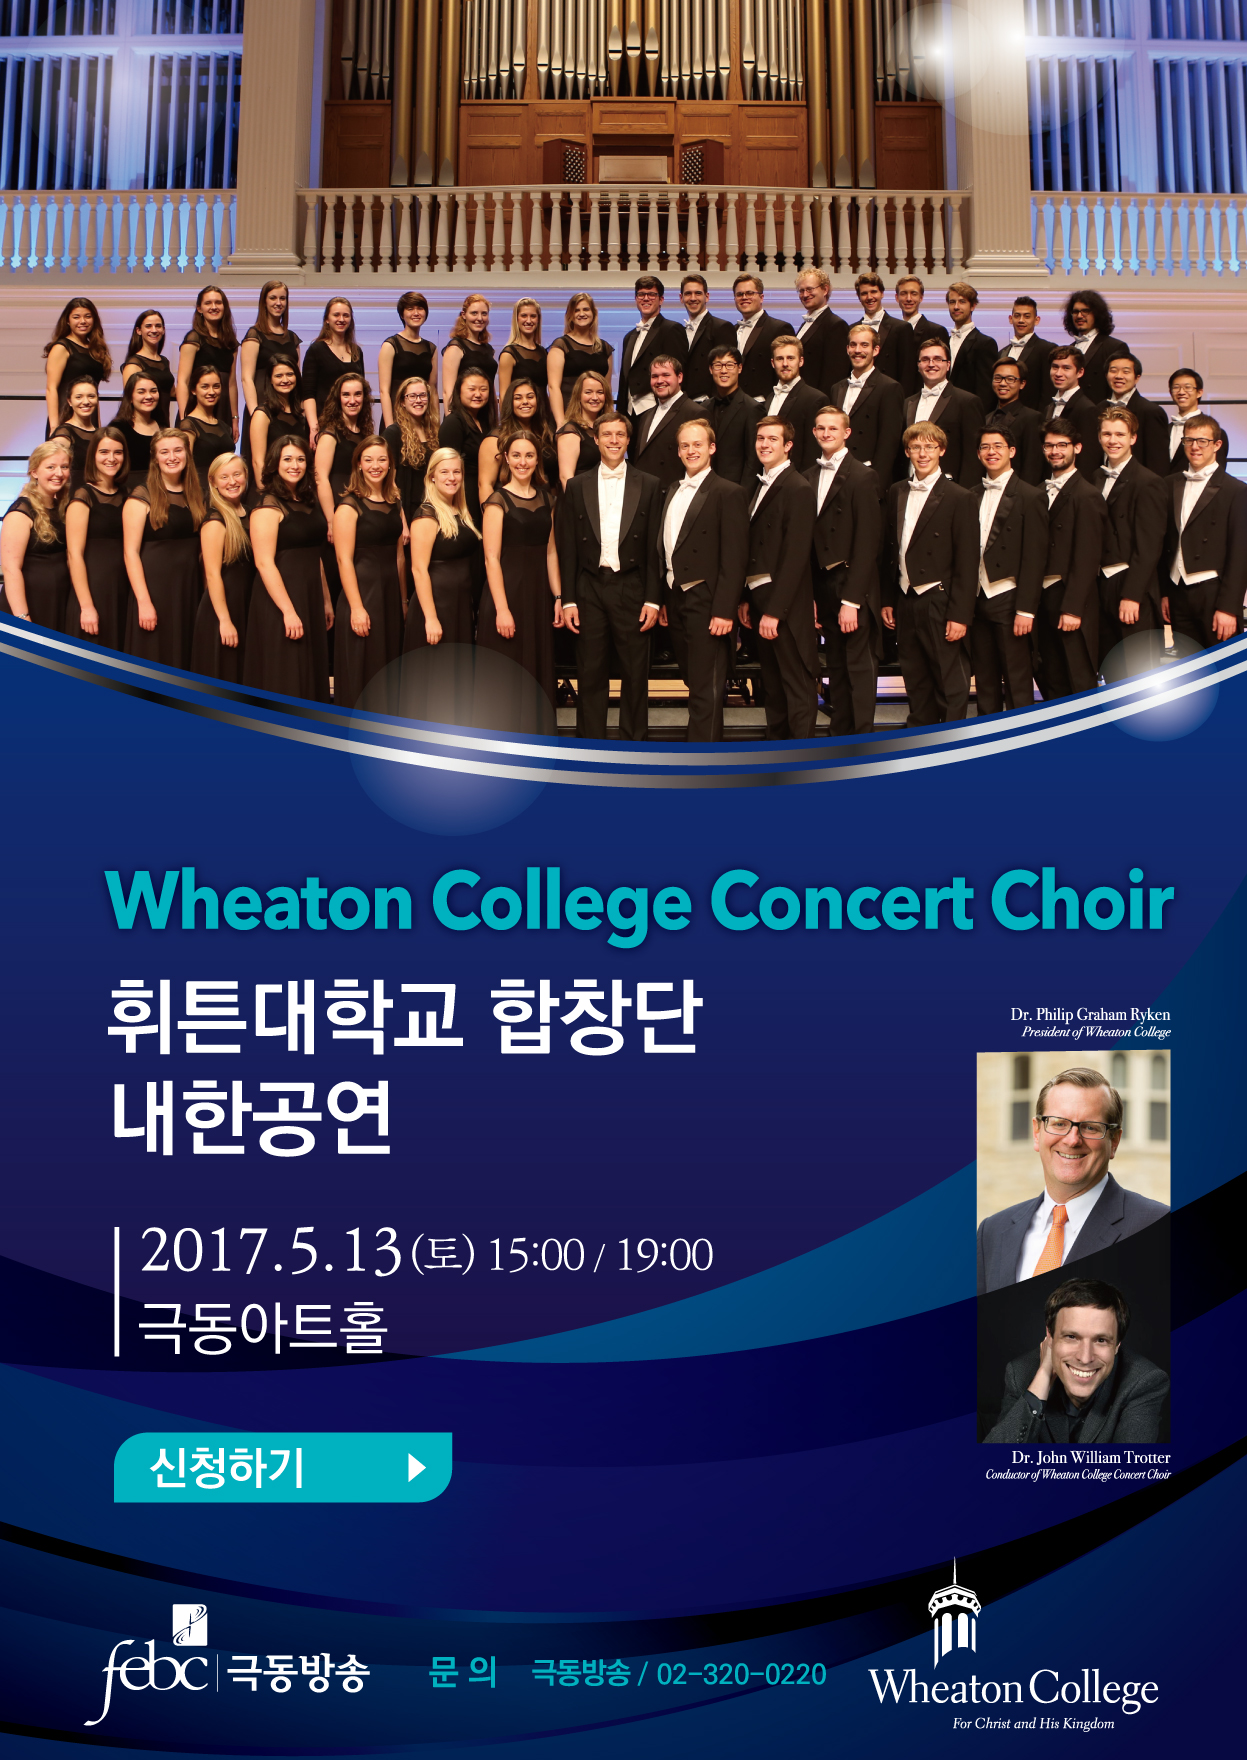 wheaton-college-poster_korea_웹게시용.jpg